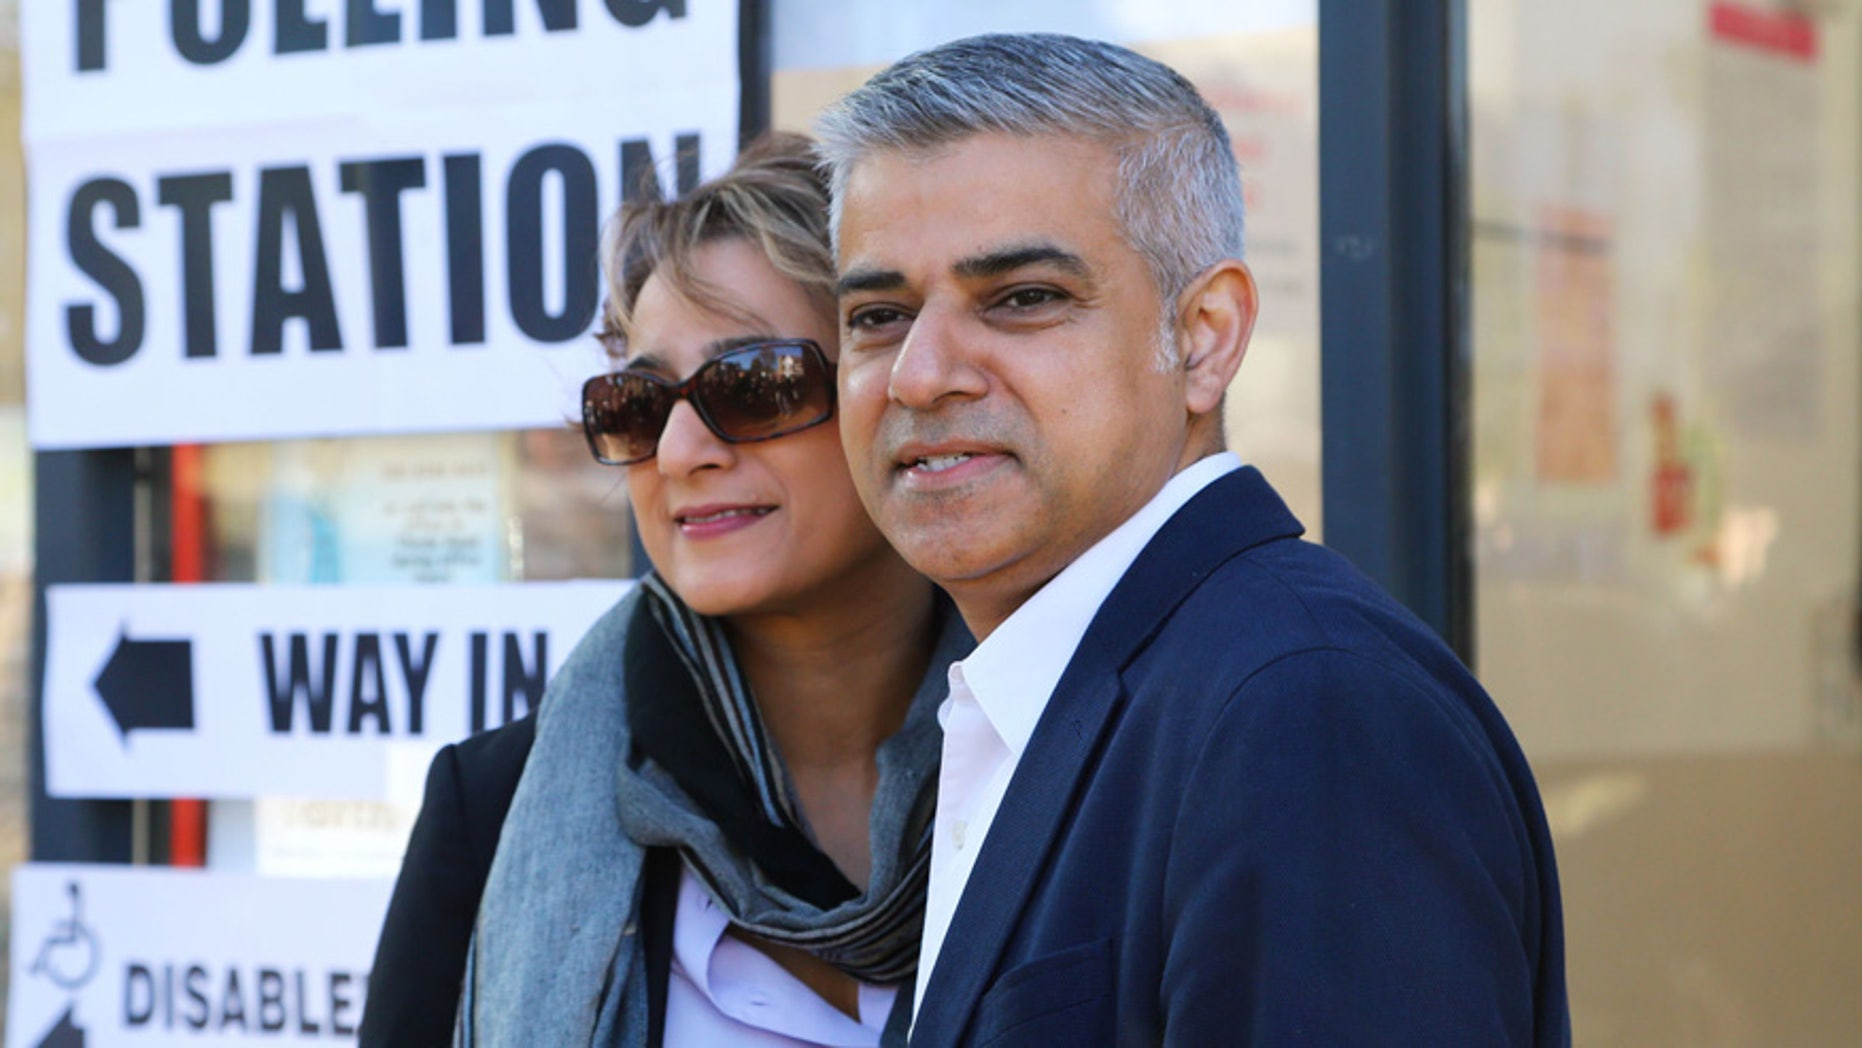 London mayoral candidate Labour Party's Sadiq Khan arrives with his wife Saadiya to cast their votes at a polling station in Streatham, south west London, Thursday May 5, 2016. (Philip Gareth Fulller/PA via AP) UNITED KINGDOM OUT NO SALES NO ARCHIVE